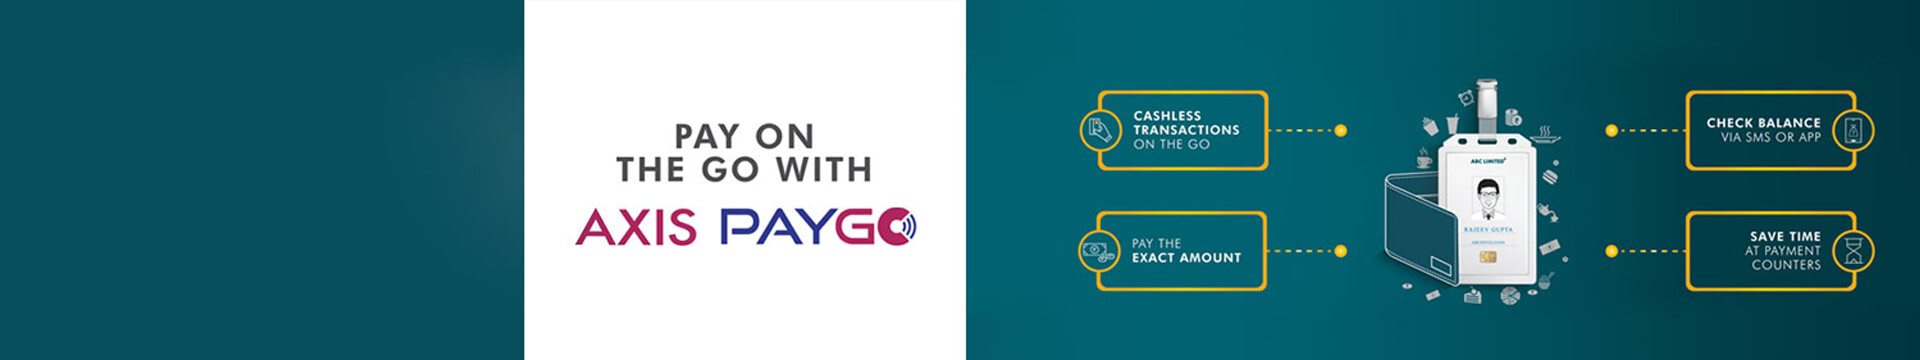 Axis PayGO Wallet Statement- Axis Bank